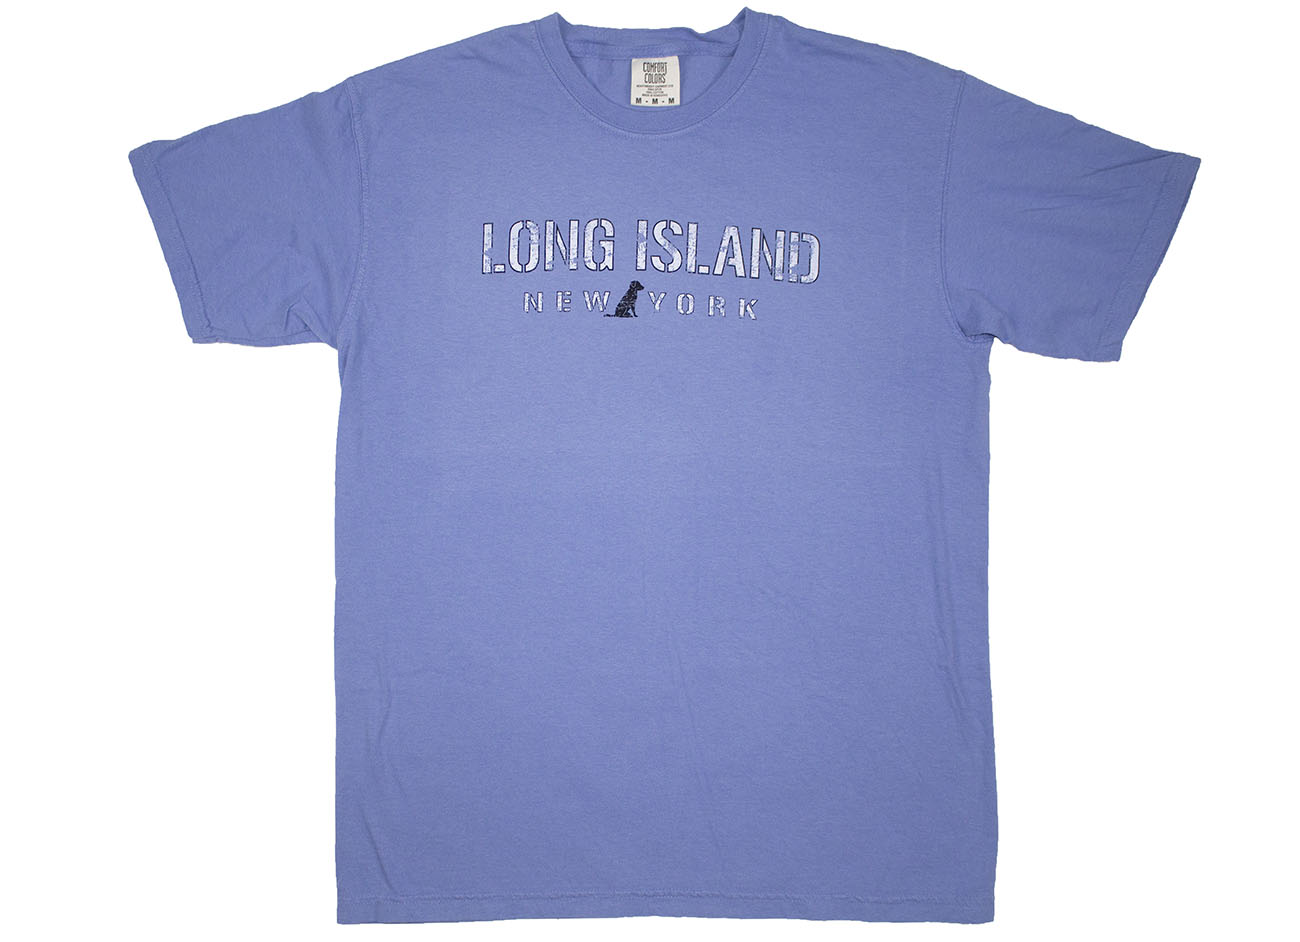 Blue T-shirt with New York text